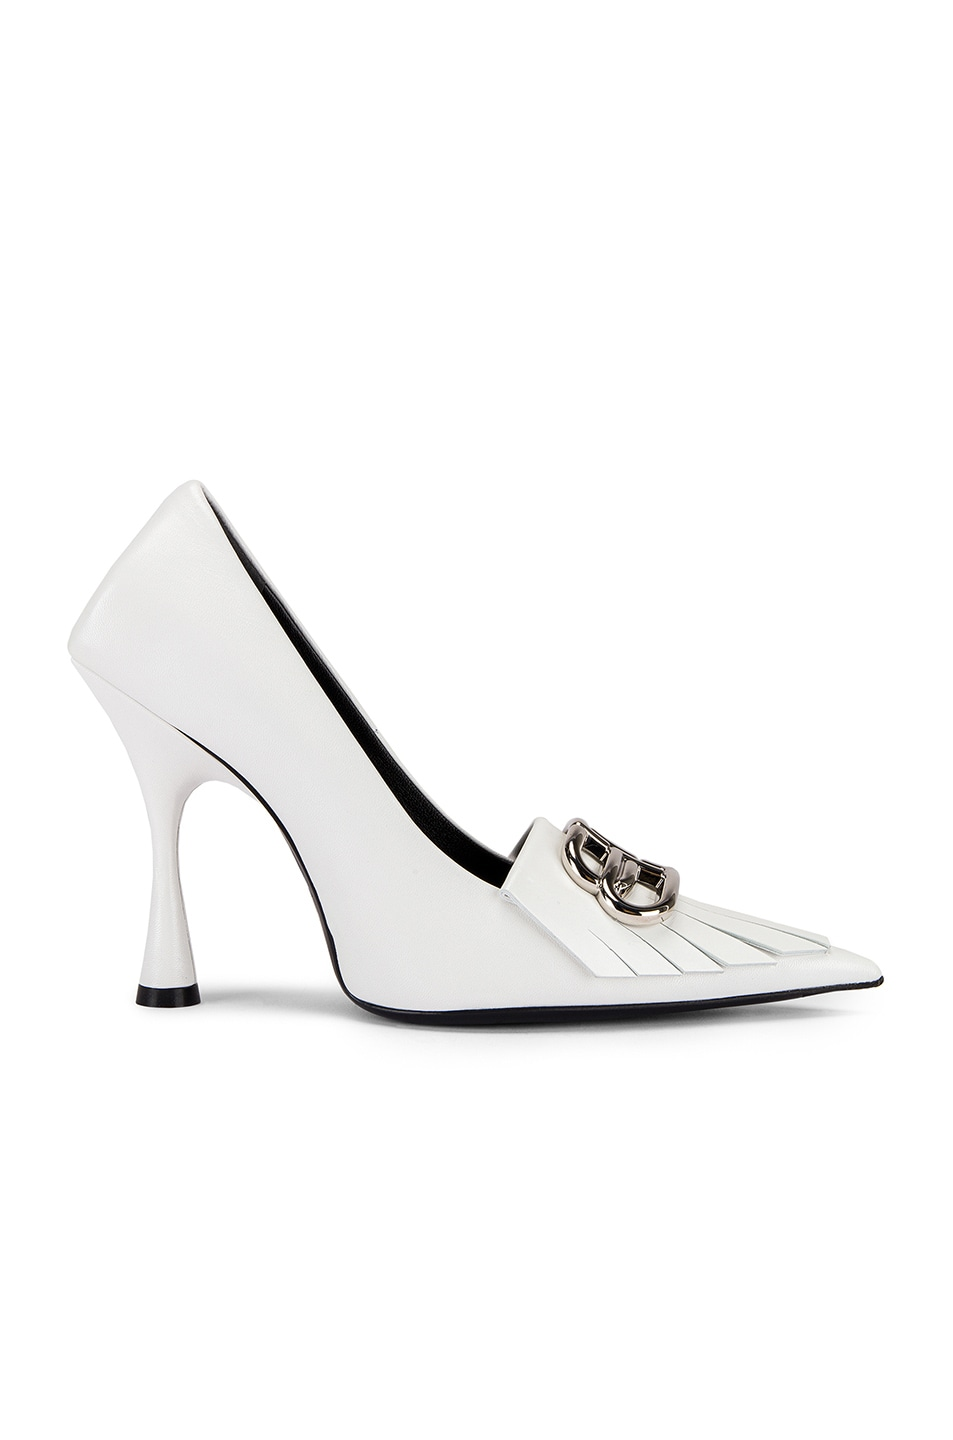 Image 2 of Balenciaga Fringe Knife Pumps in White & Silver